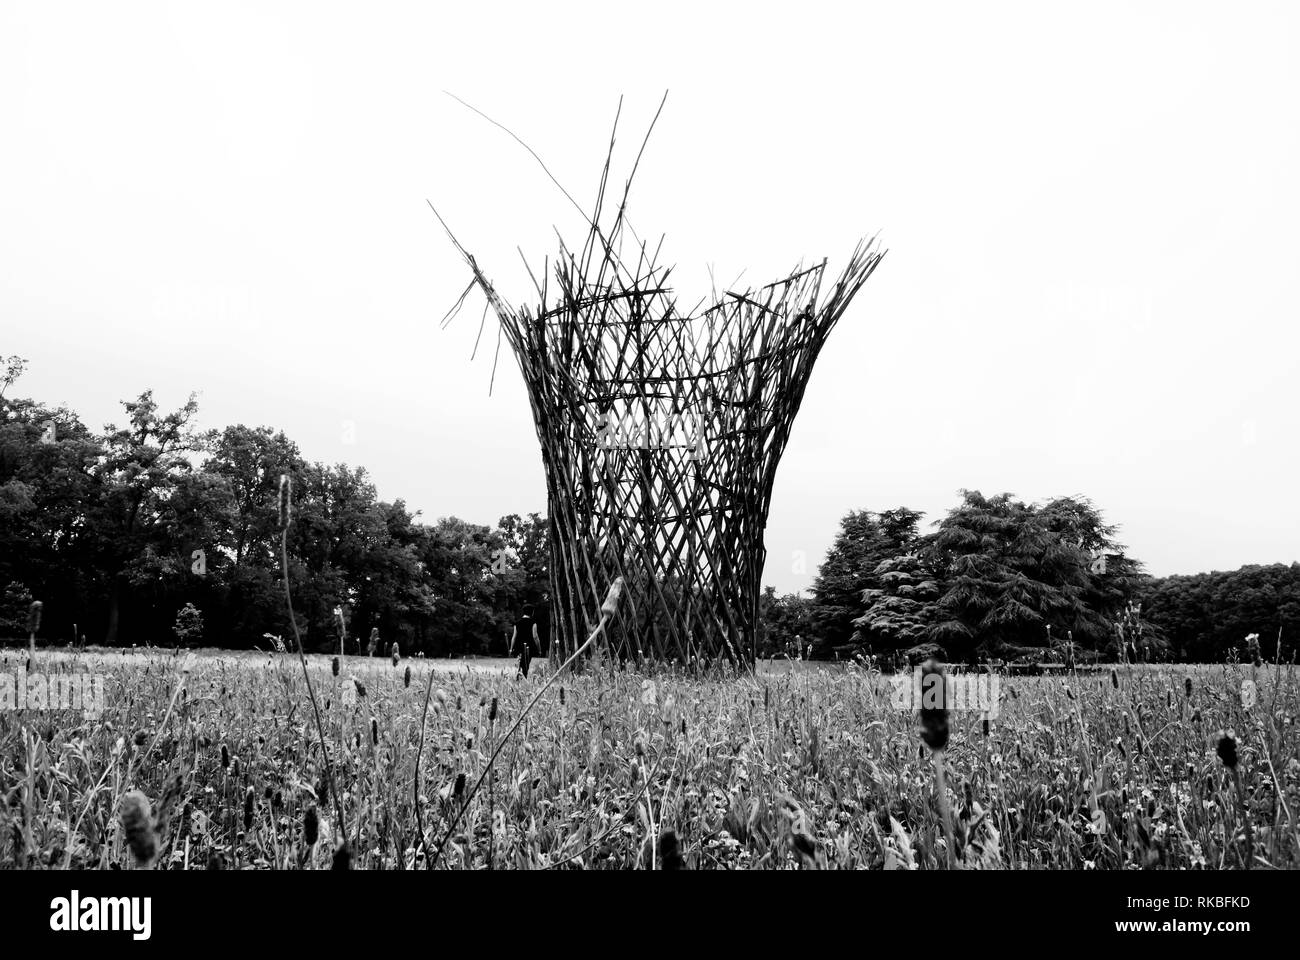 Public Gardens of Monza. Remains of an art installation - Stock Image